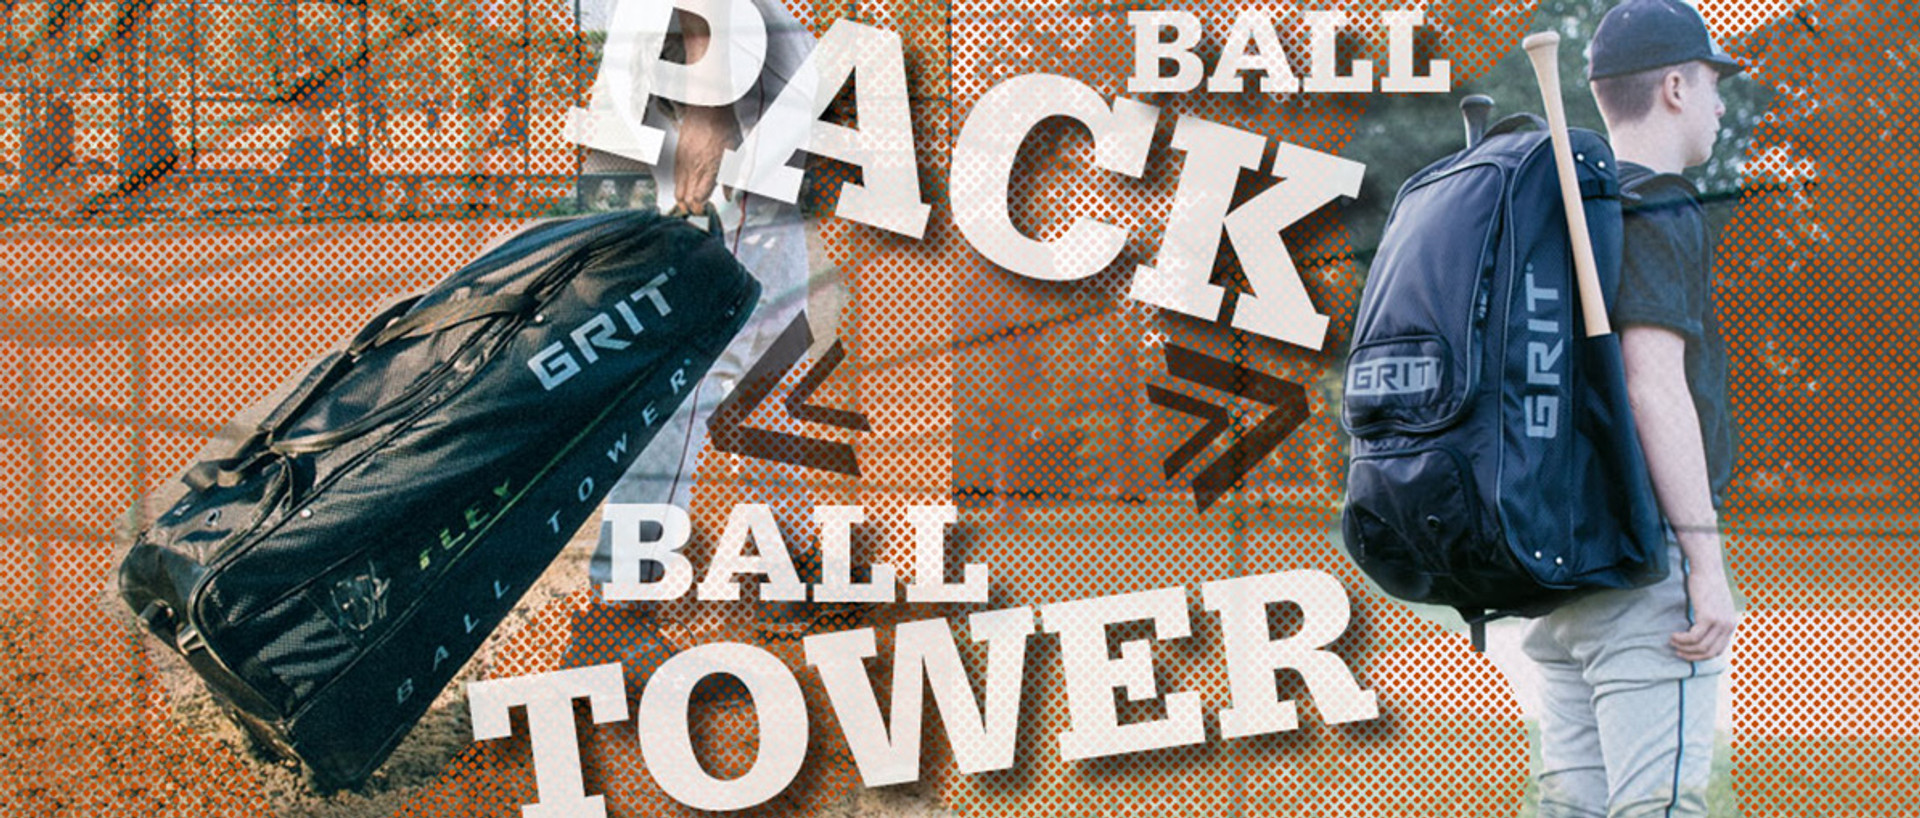 Grit Ball Bags